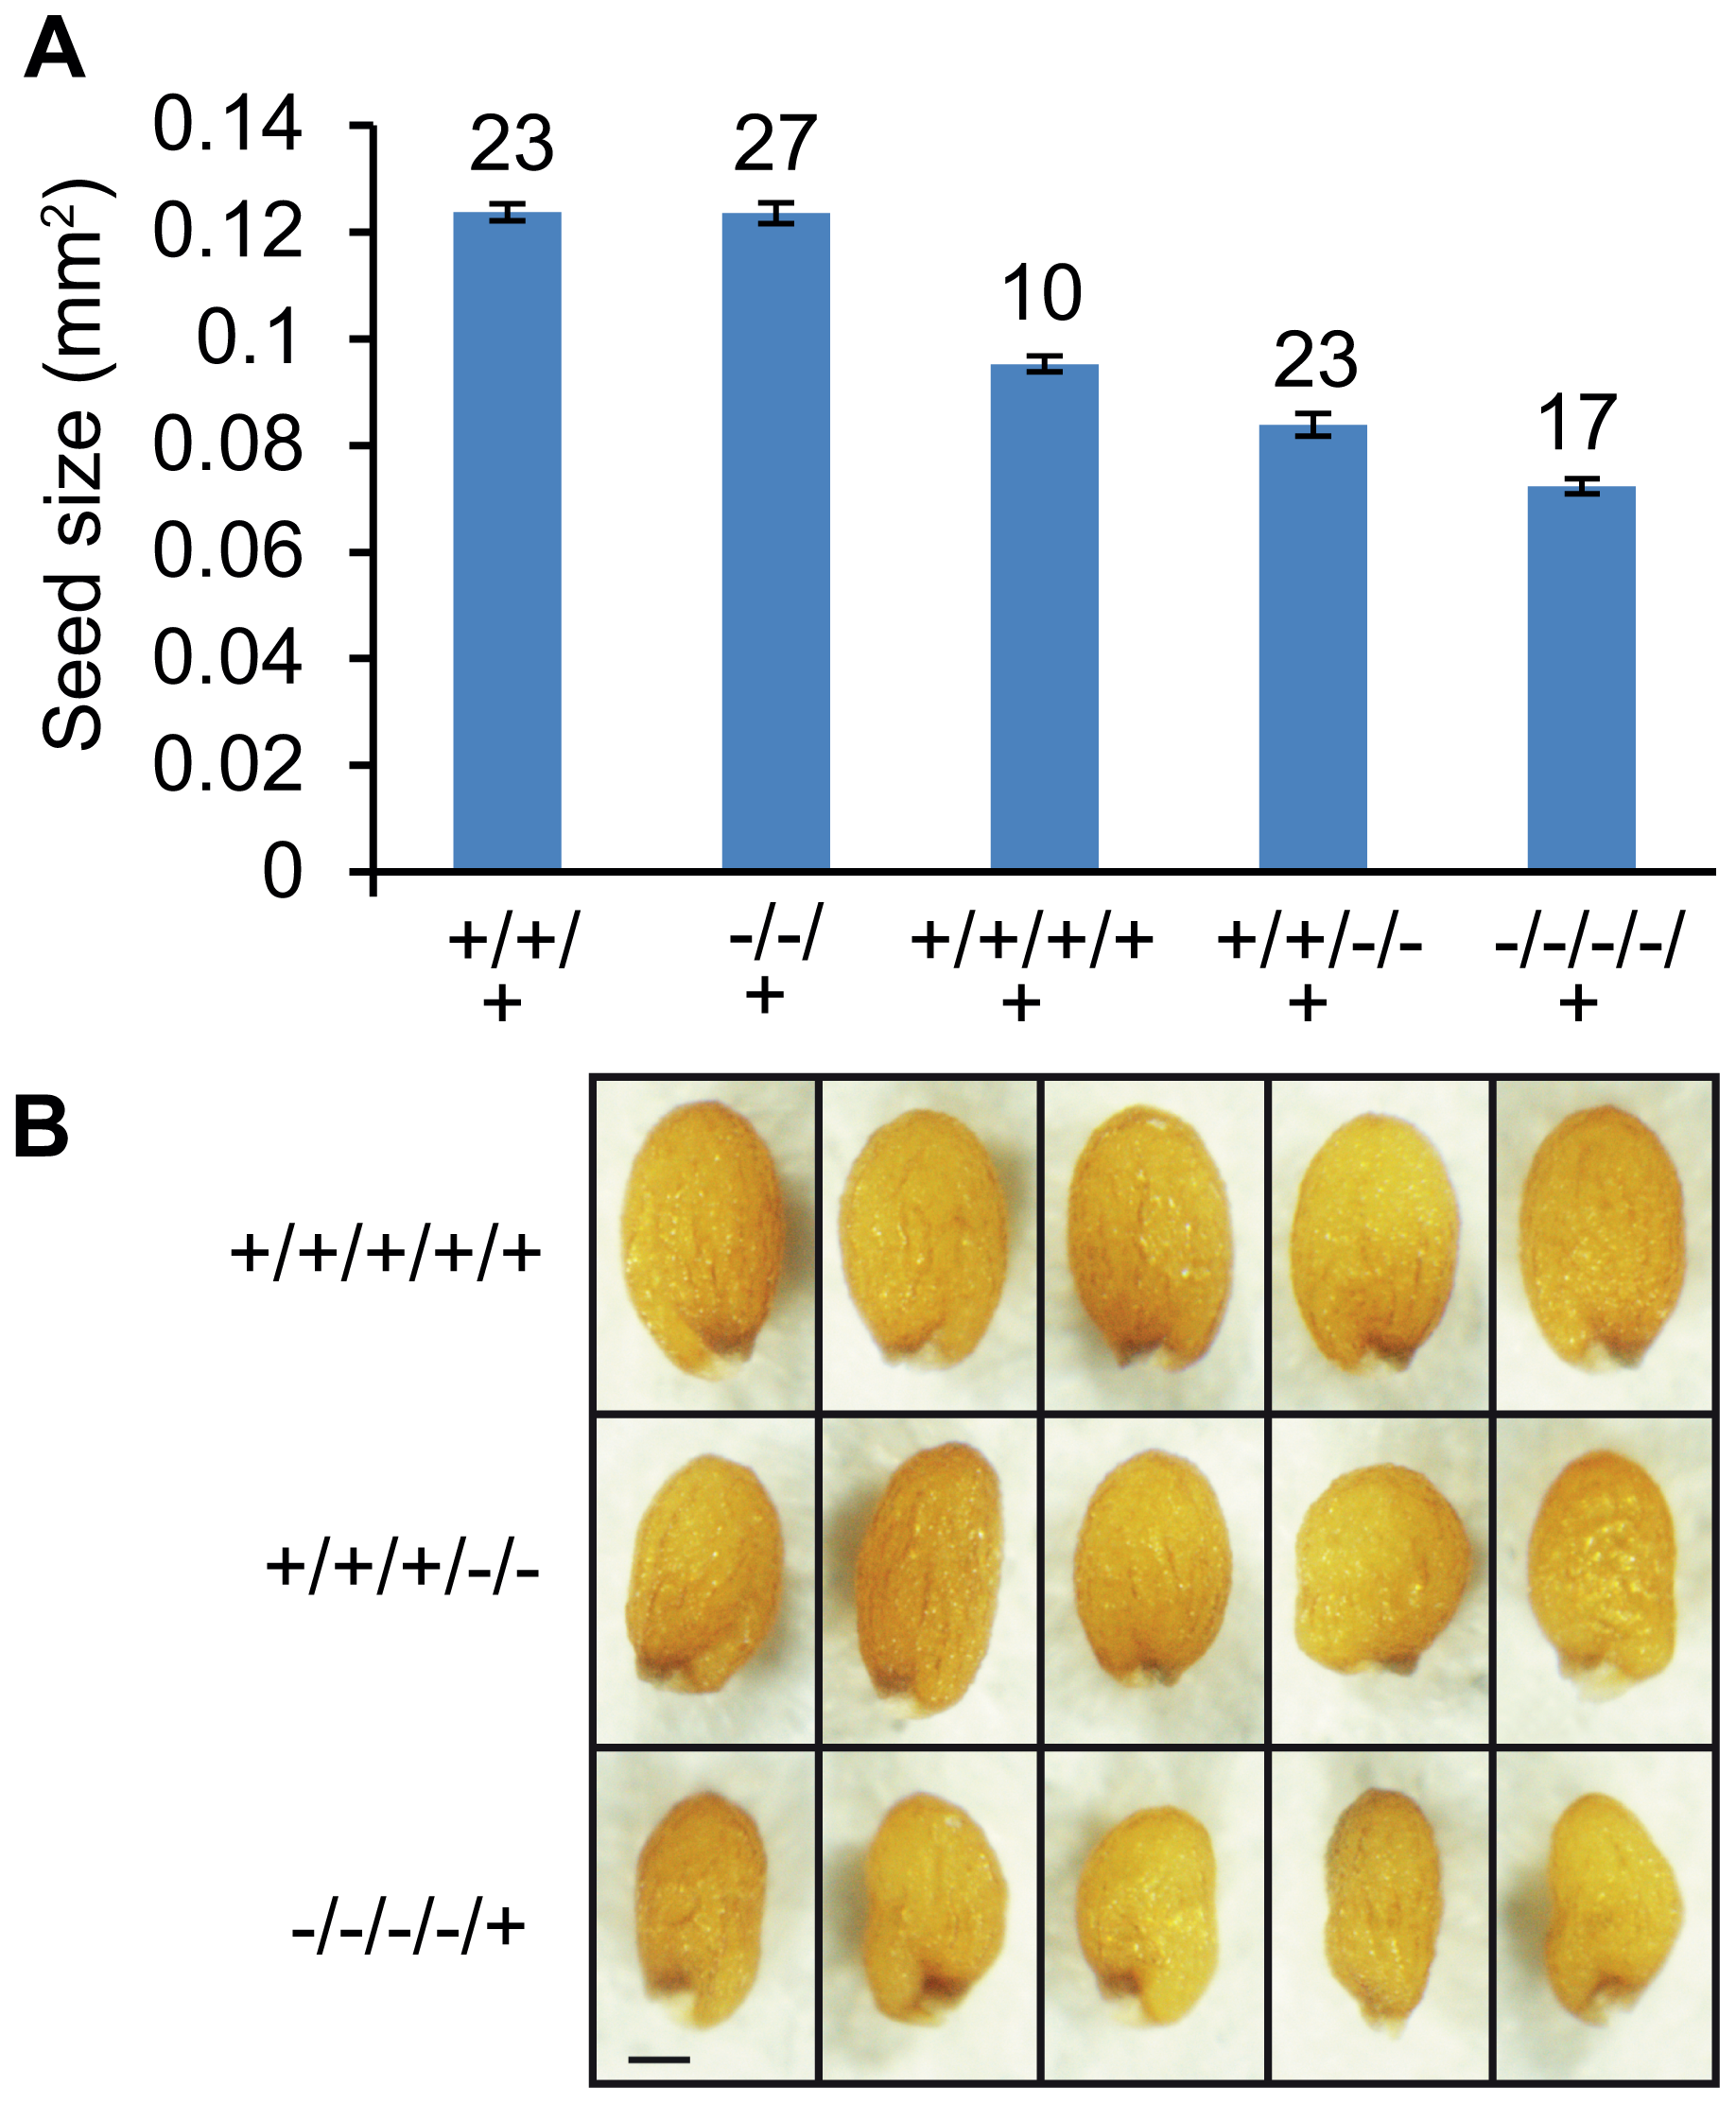 Size of Triploid Seeds Is Dependent on the Dosage of <i>AGL62</i>.